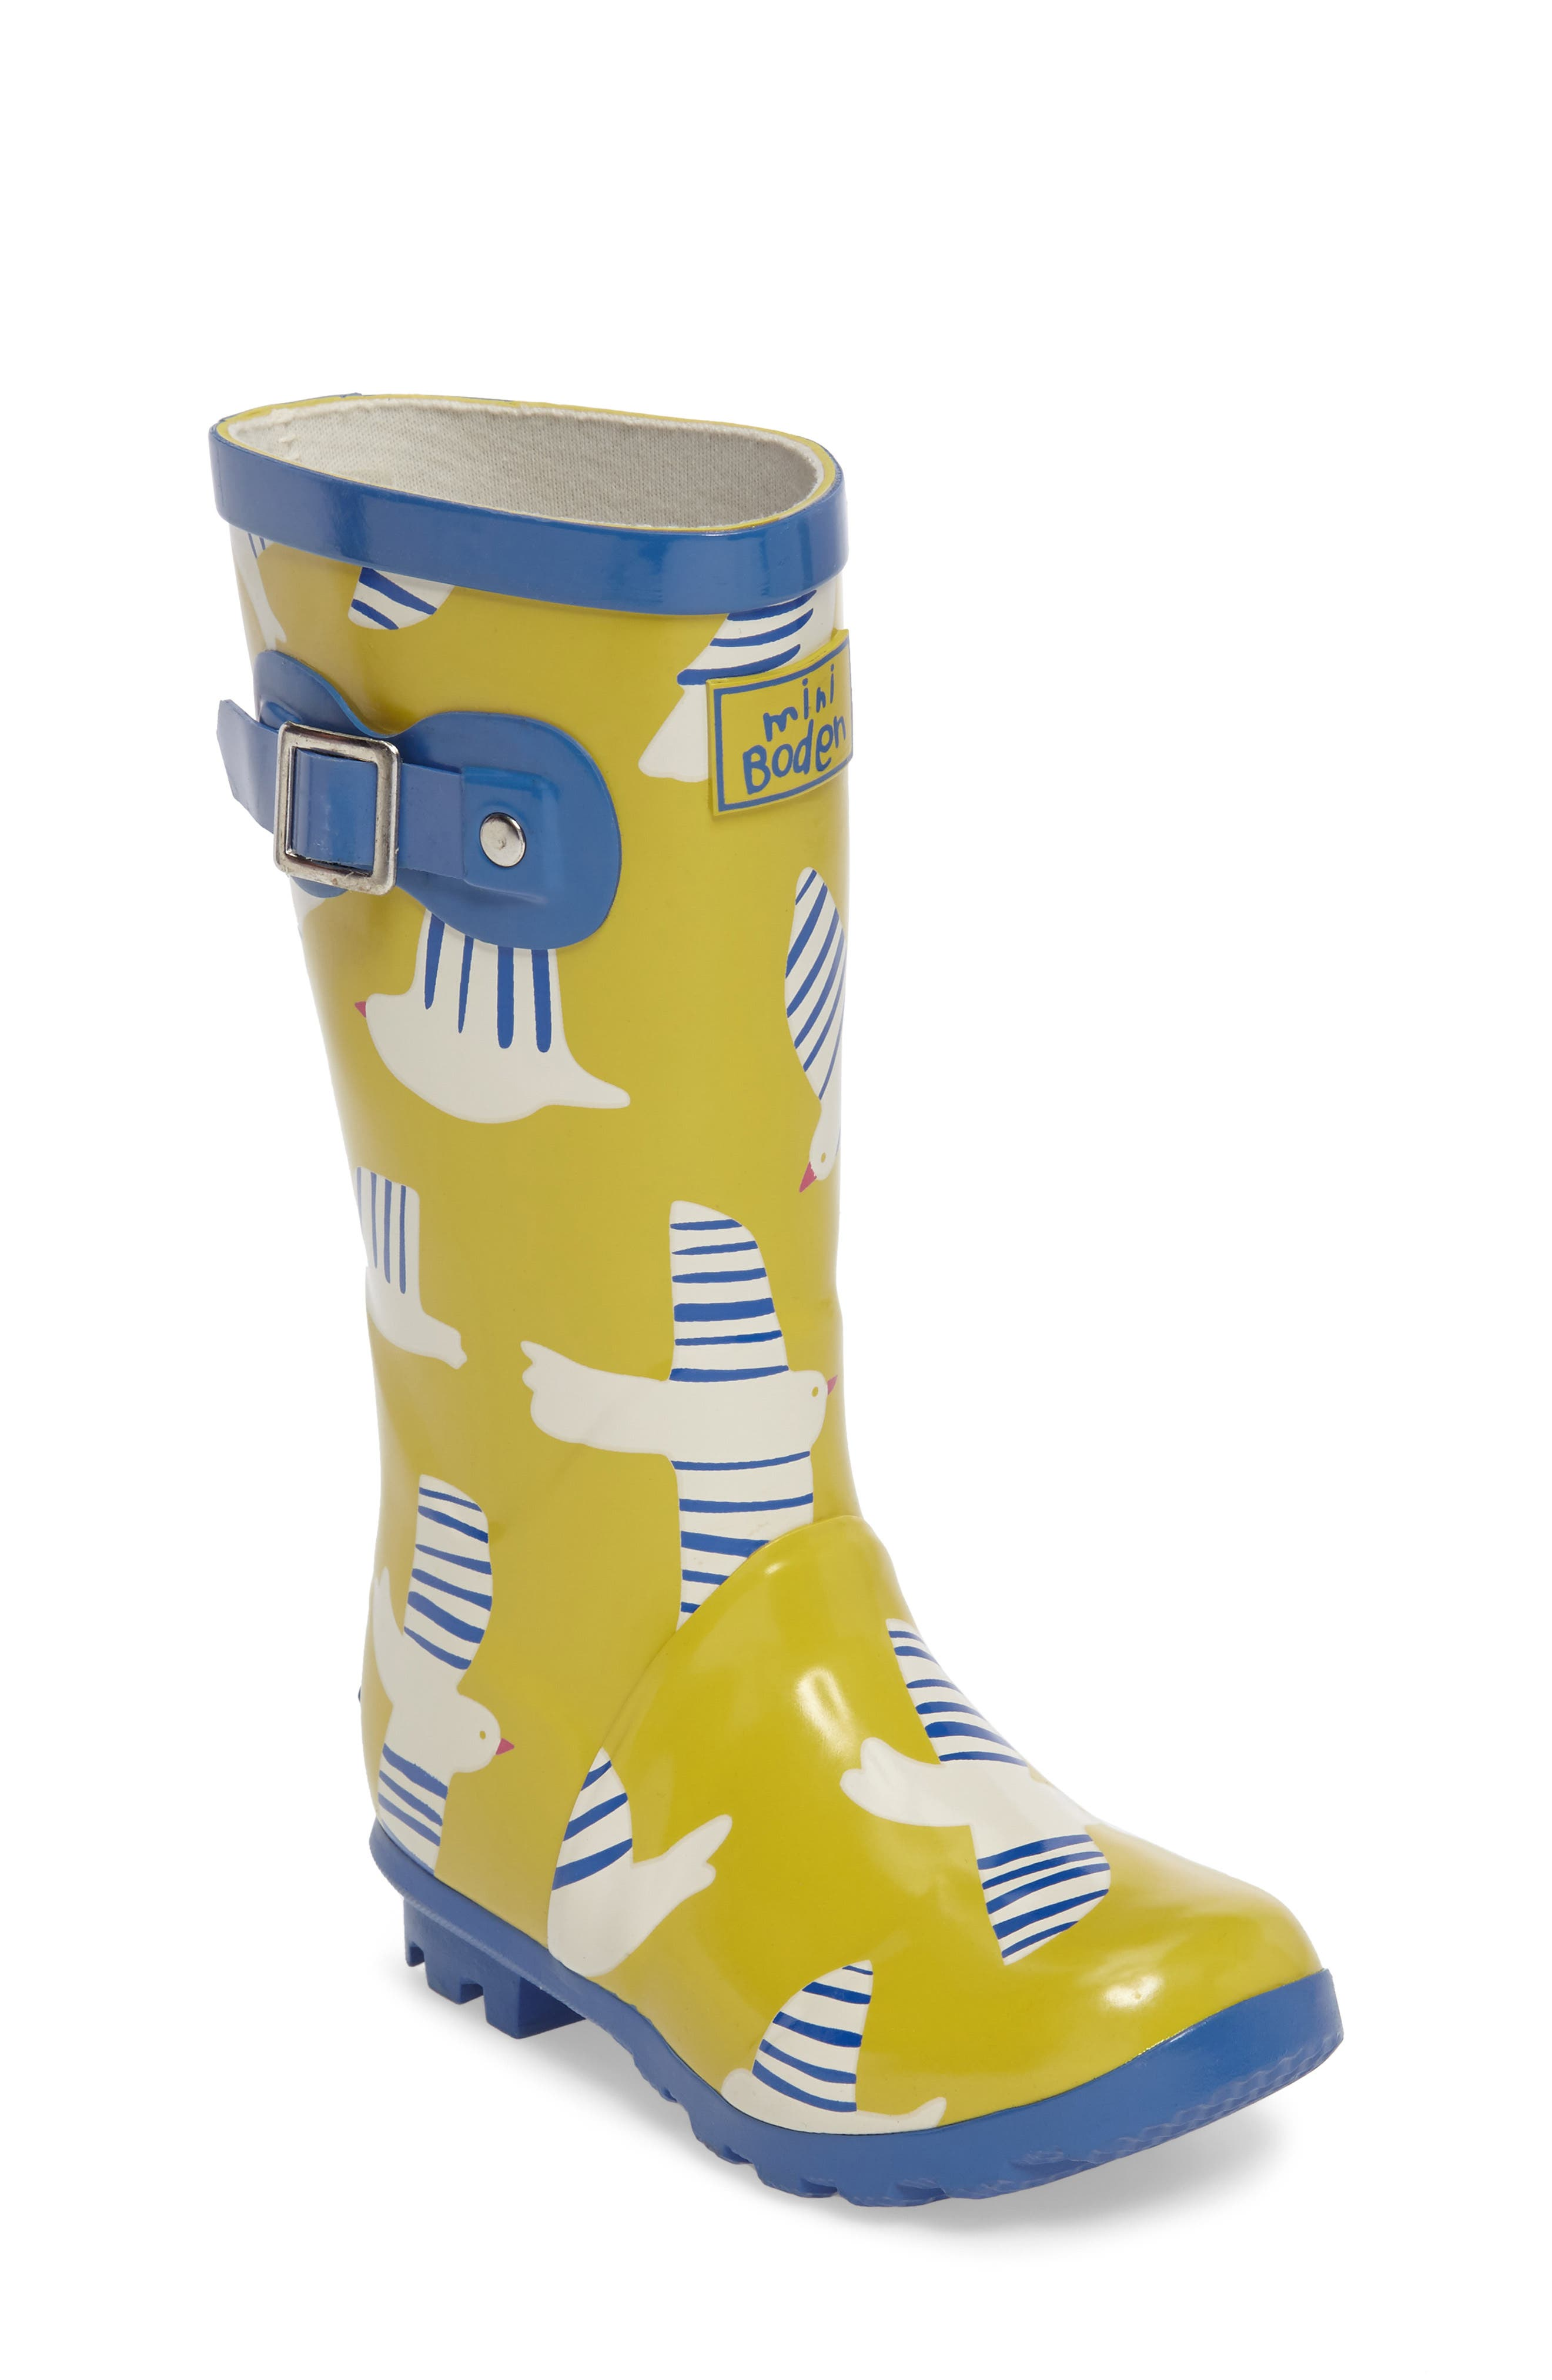 Alternate Image 1 Selected - Mini Boden Printed Wellies (Toddler & Little Kid)